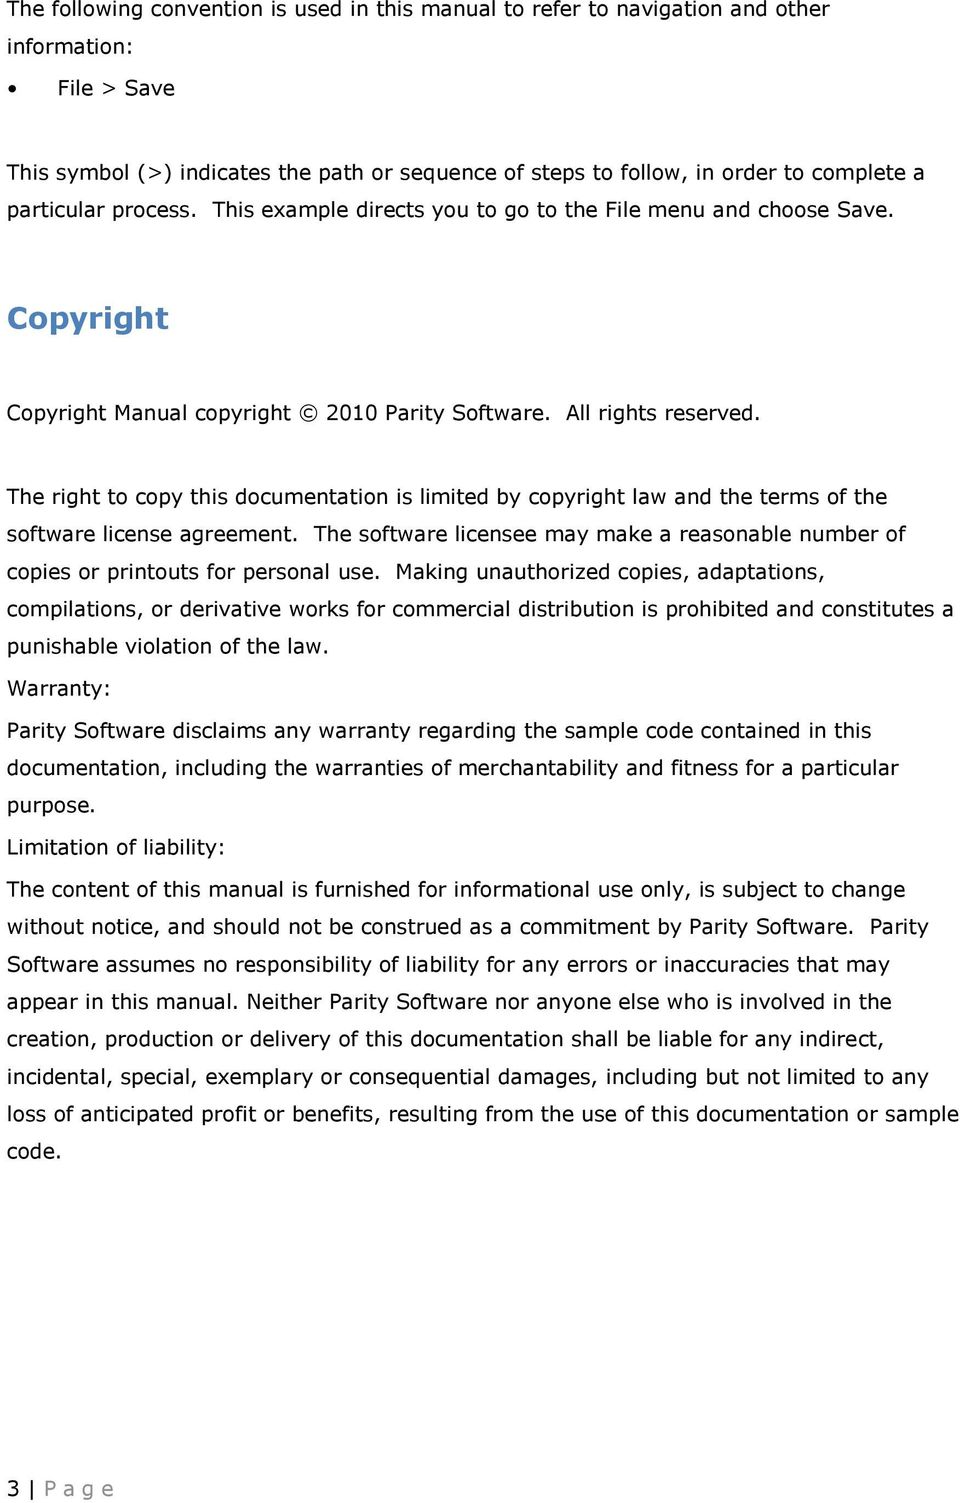 The right to copy this documentation is limited by copyright law and the terms of the software license agreement.